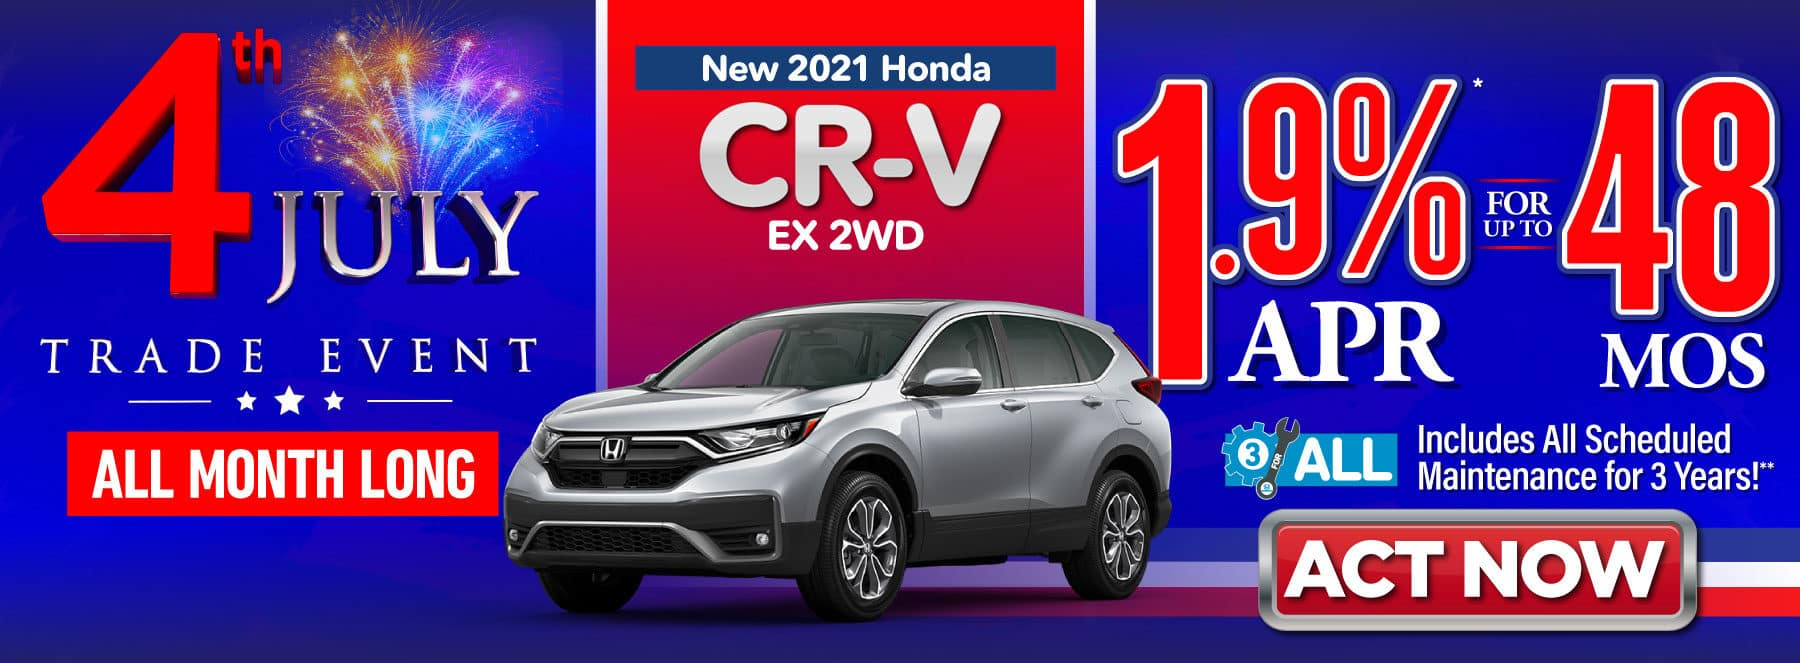 New 2021 Honda CR-V EX - 1.9% APR for up to 48 Months - ACT NOW